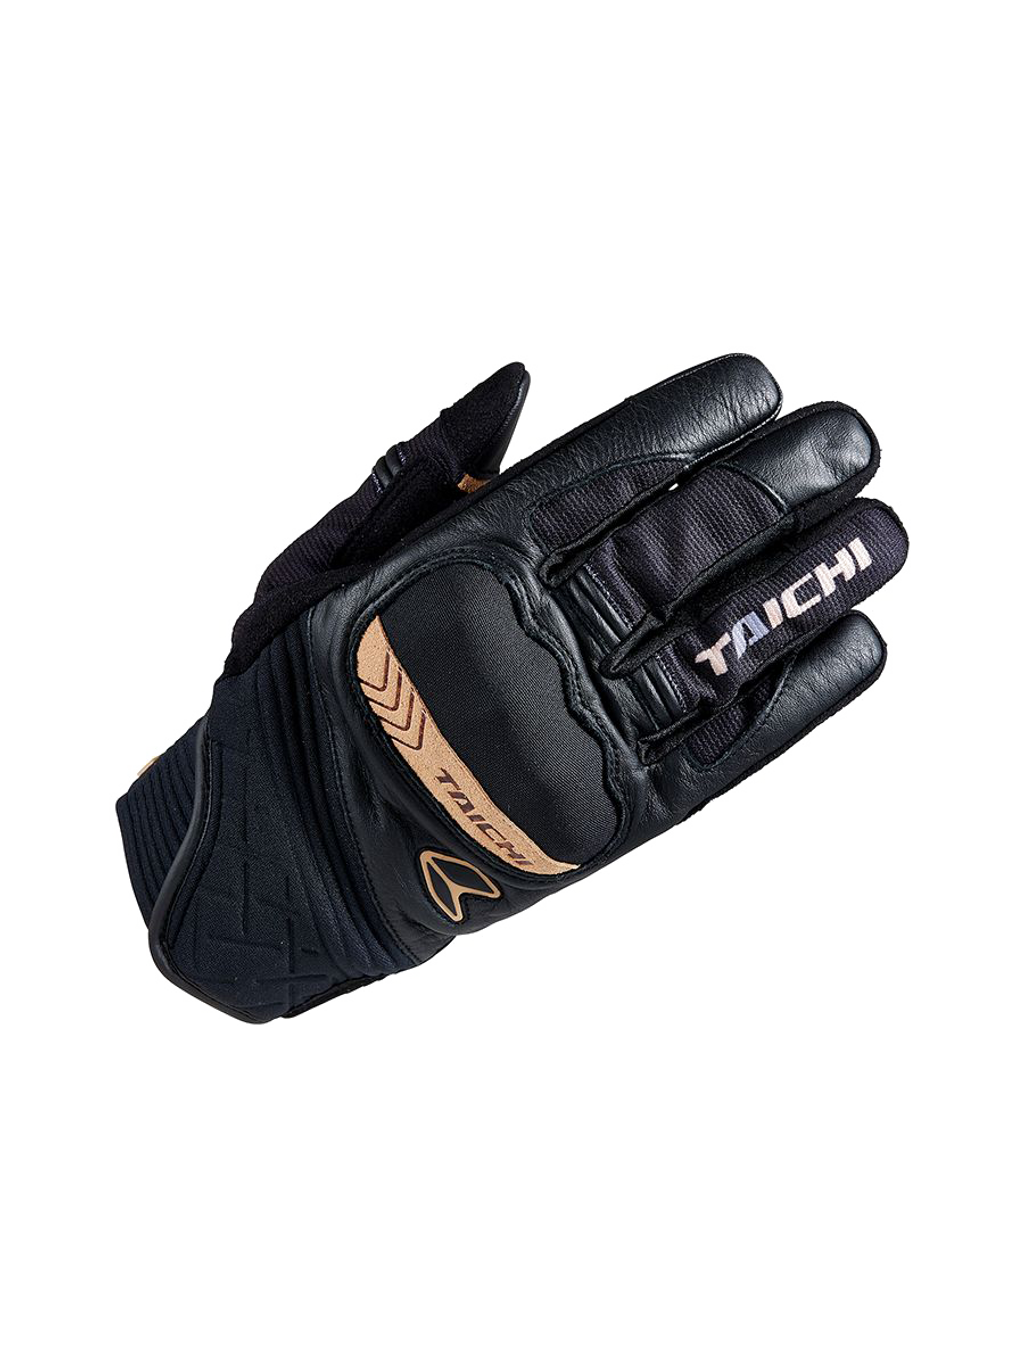 44 RS TAICHI RST637 SCOUT WINTER GLOVE black gold.png